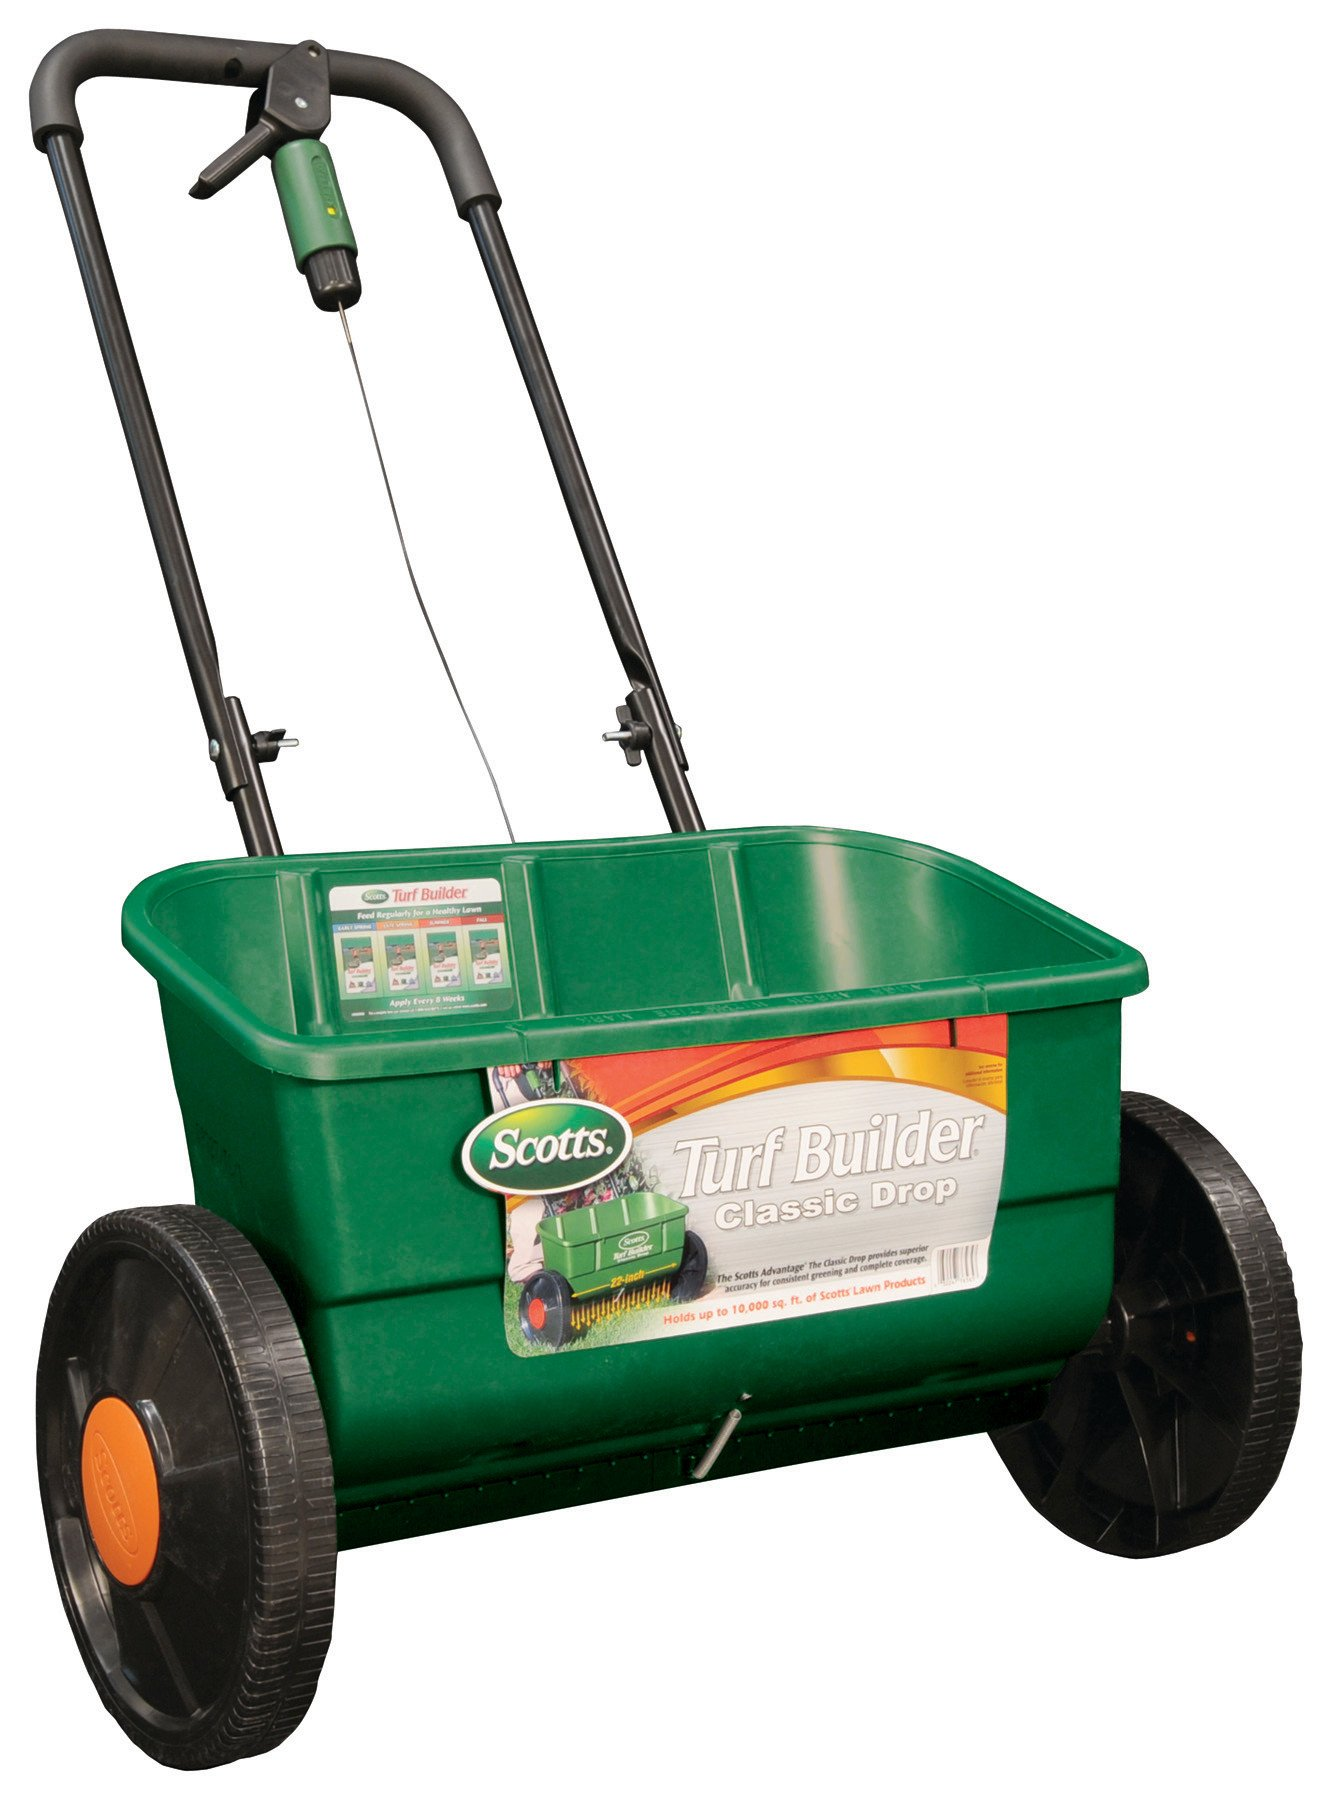 Scotts 76565 Turf Builder Classic Drop Spreader, 10m by Scotts